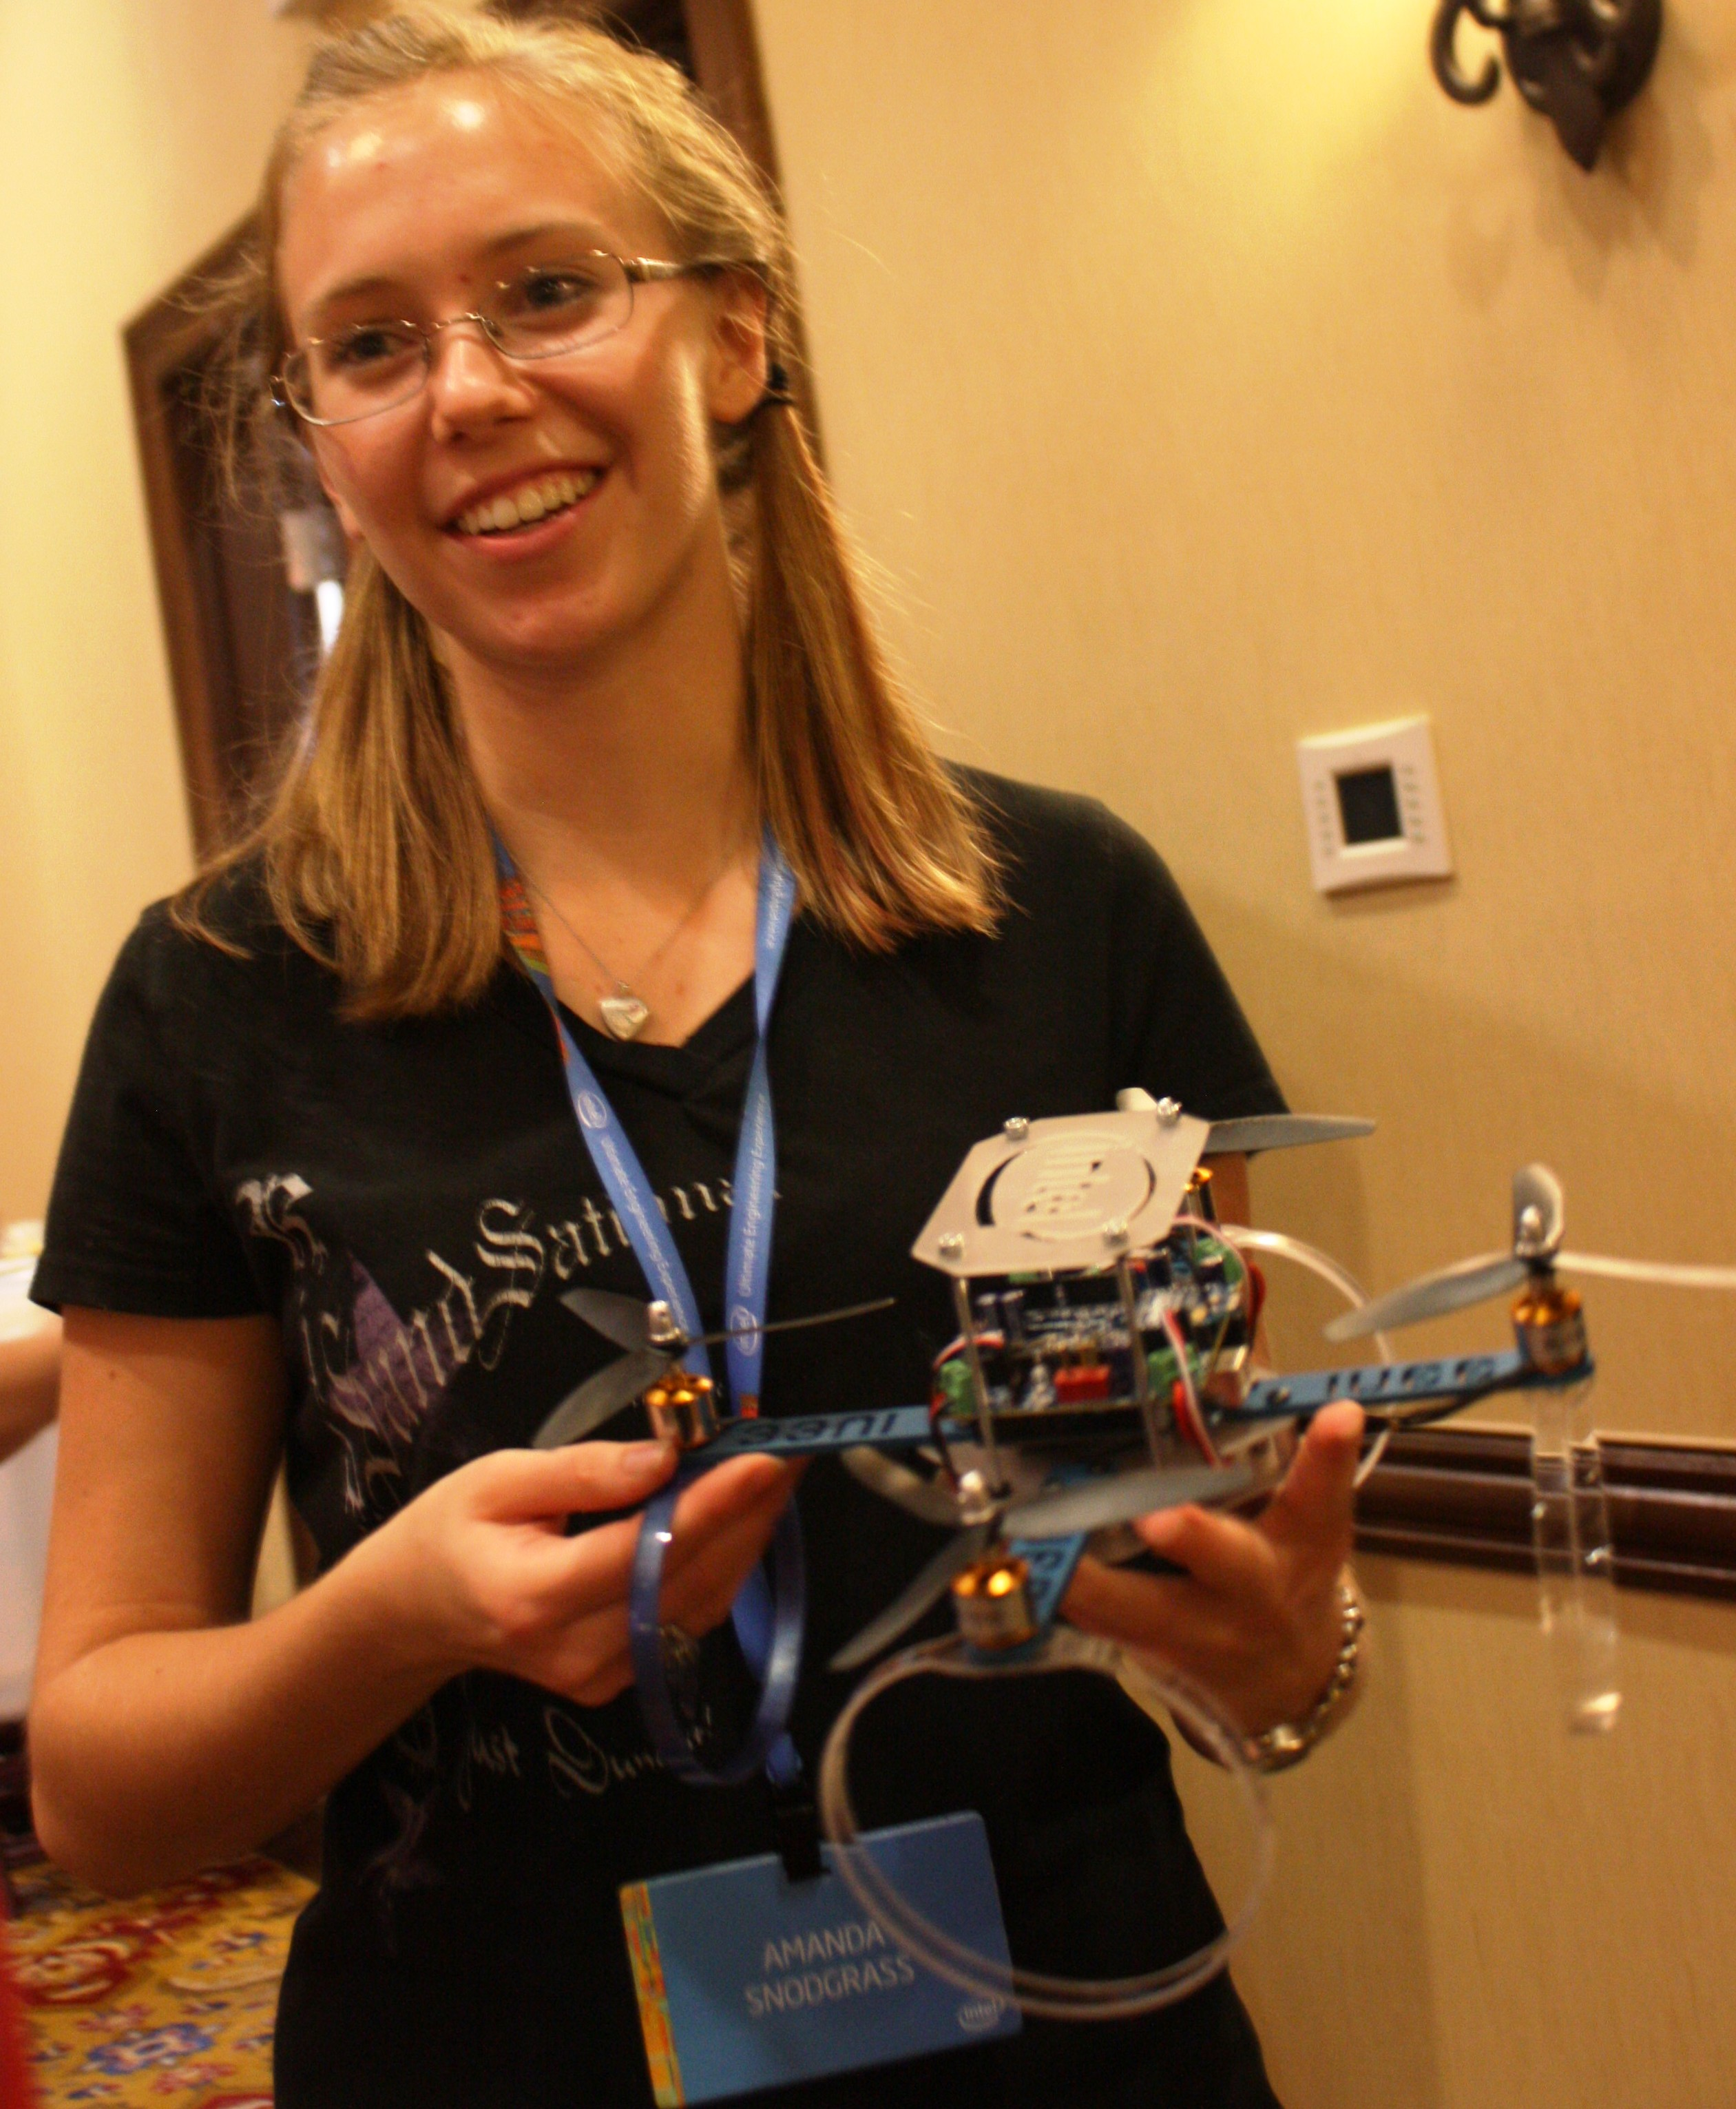 ASU students experience Intel's ultimate engineering boot camp